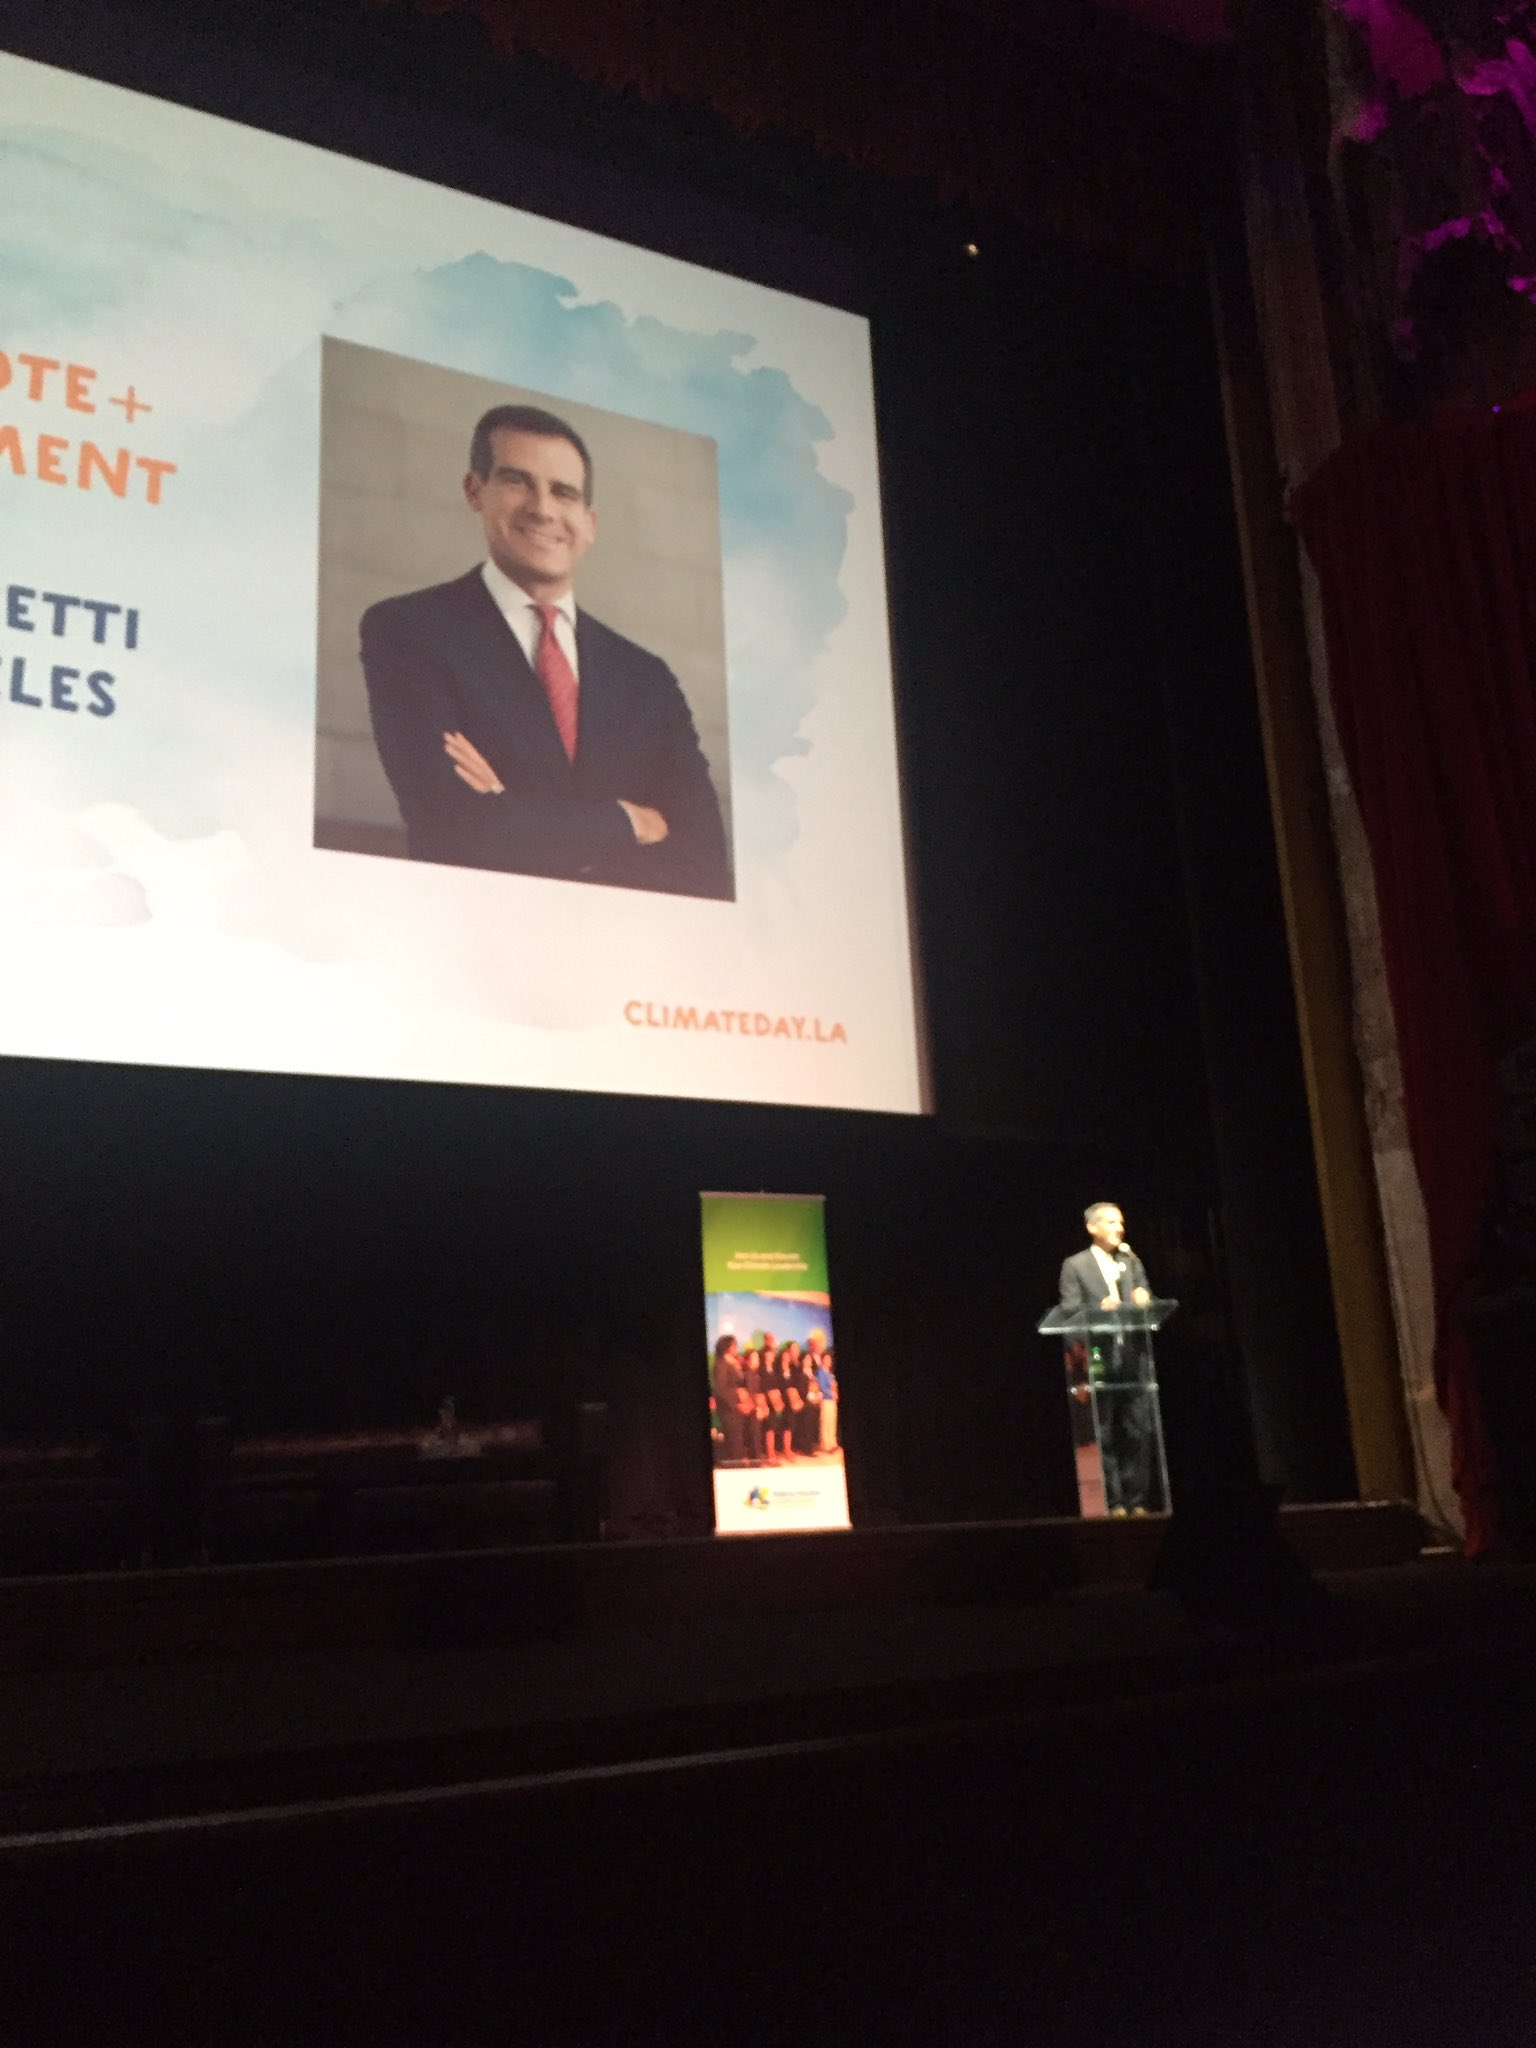 """If the WH opts out, mayors will opt in to the Paris Agreement!"" @MayorOfLA @ericgarcetti #ClimateDayLA https://t.co/z9TesCV9xi"